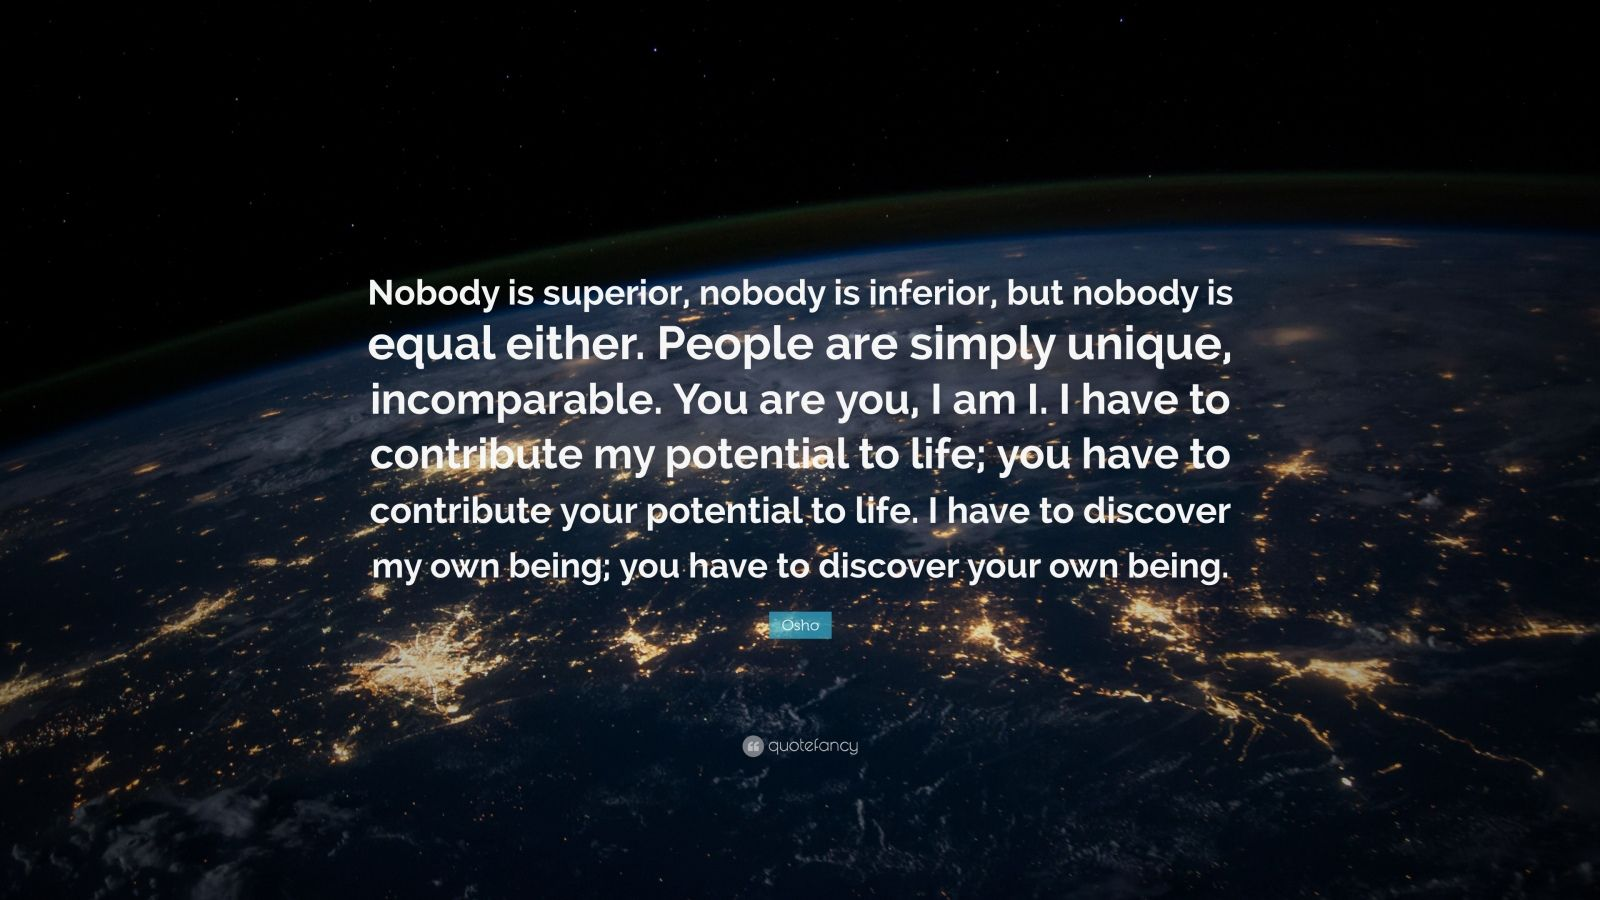 """Osho Quote: """"Nobody is superior, nobody is inferior, but nobody is equal either. People are simply unique, incomparable. You are you, I am I. I have to contribute my potential to life; you have to contribute your potential to life. I have to discover my own being; you have to discover your own being."""""""